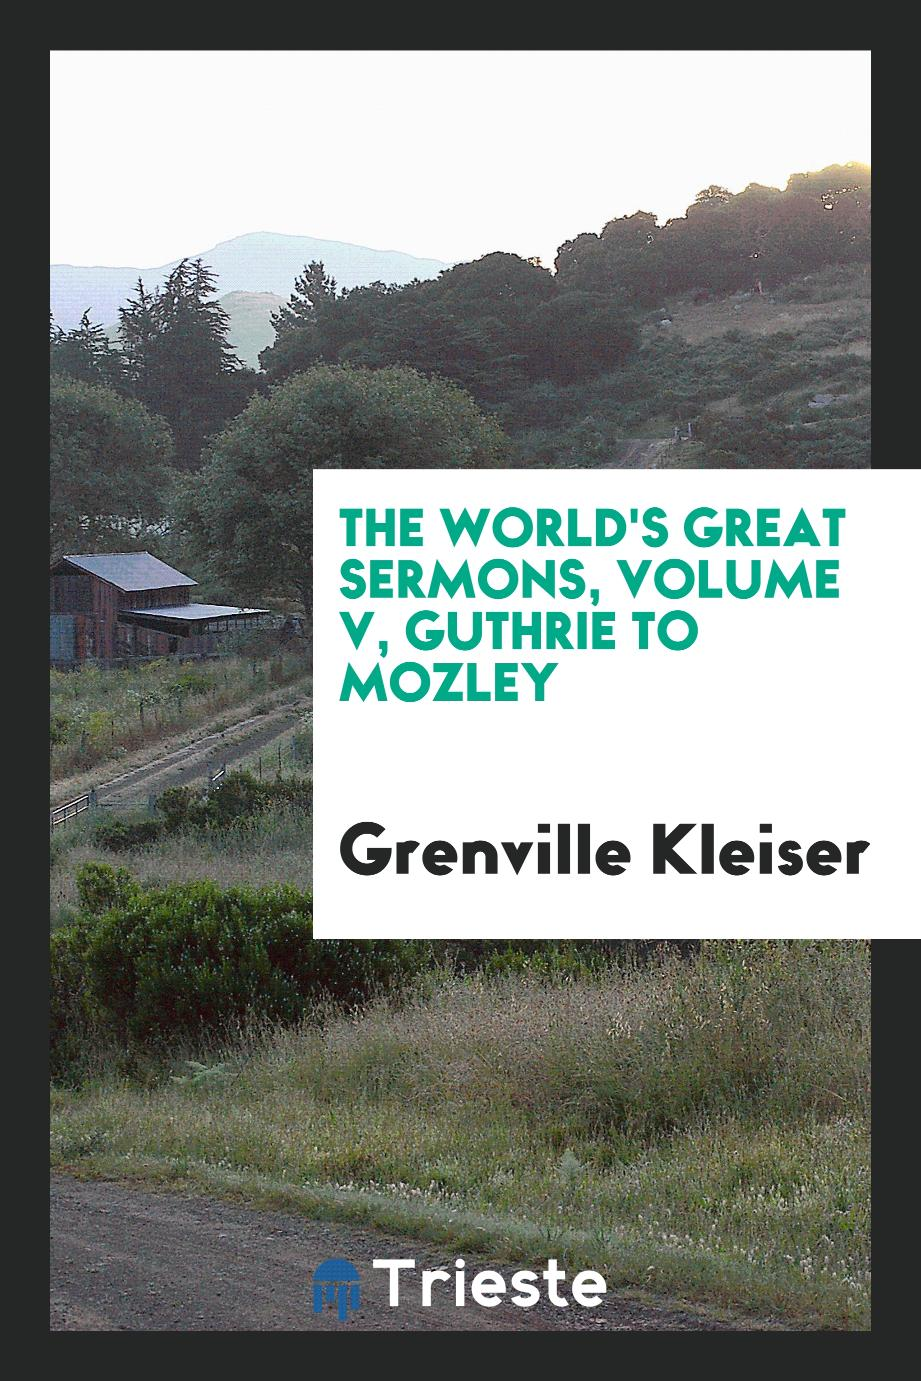 The World's Great Sermons, Volume V, Guthrie to Mozley